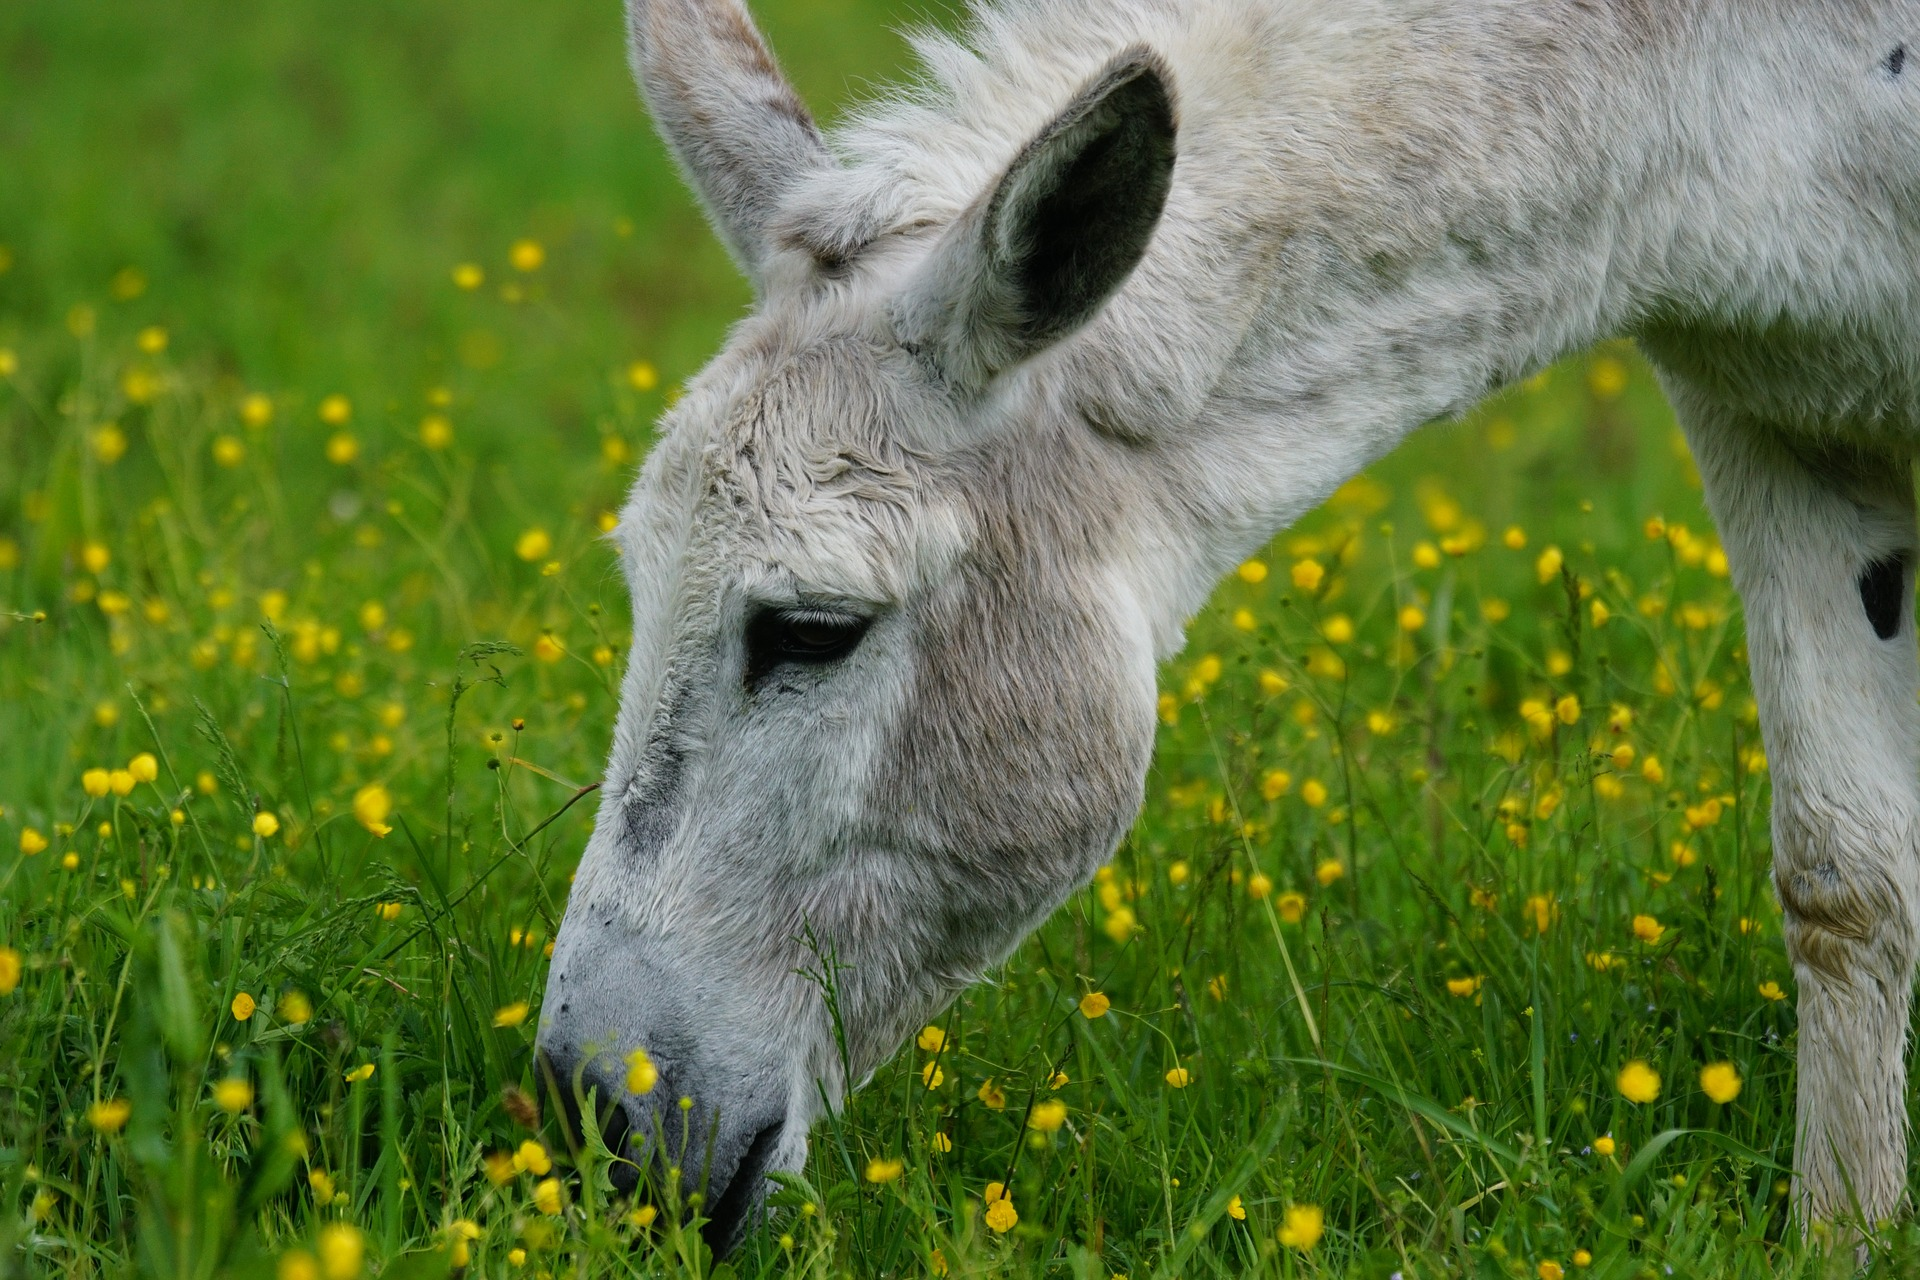 Donkey Cool Facts7 Coloring Kids